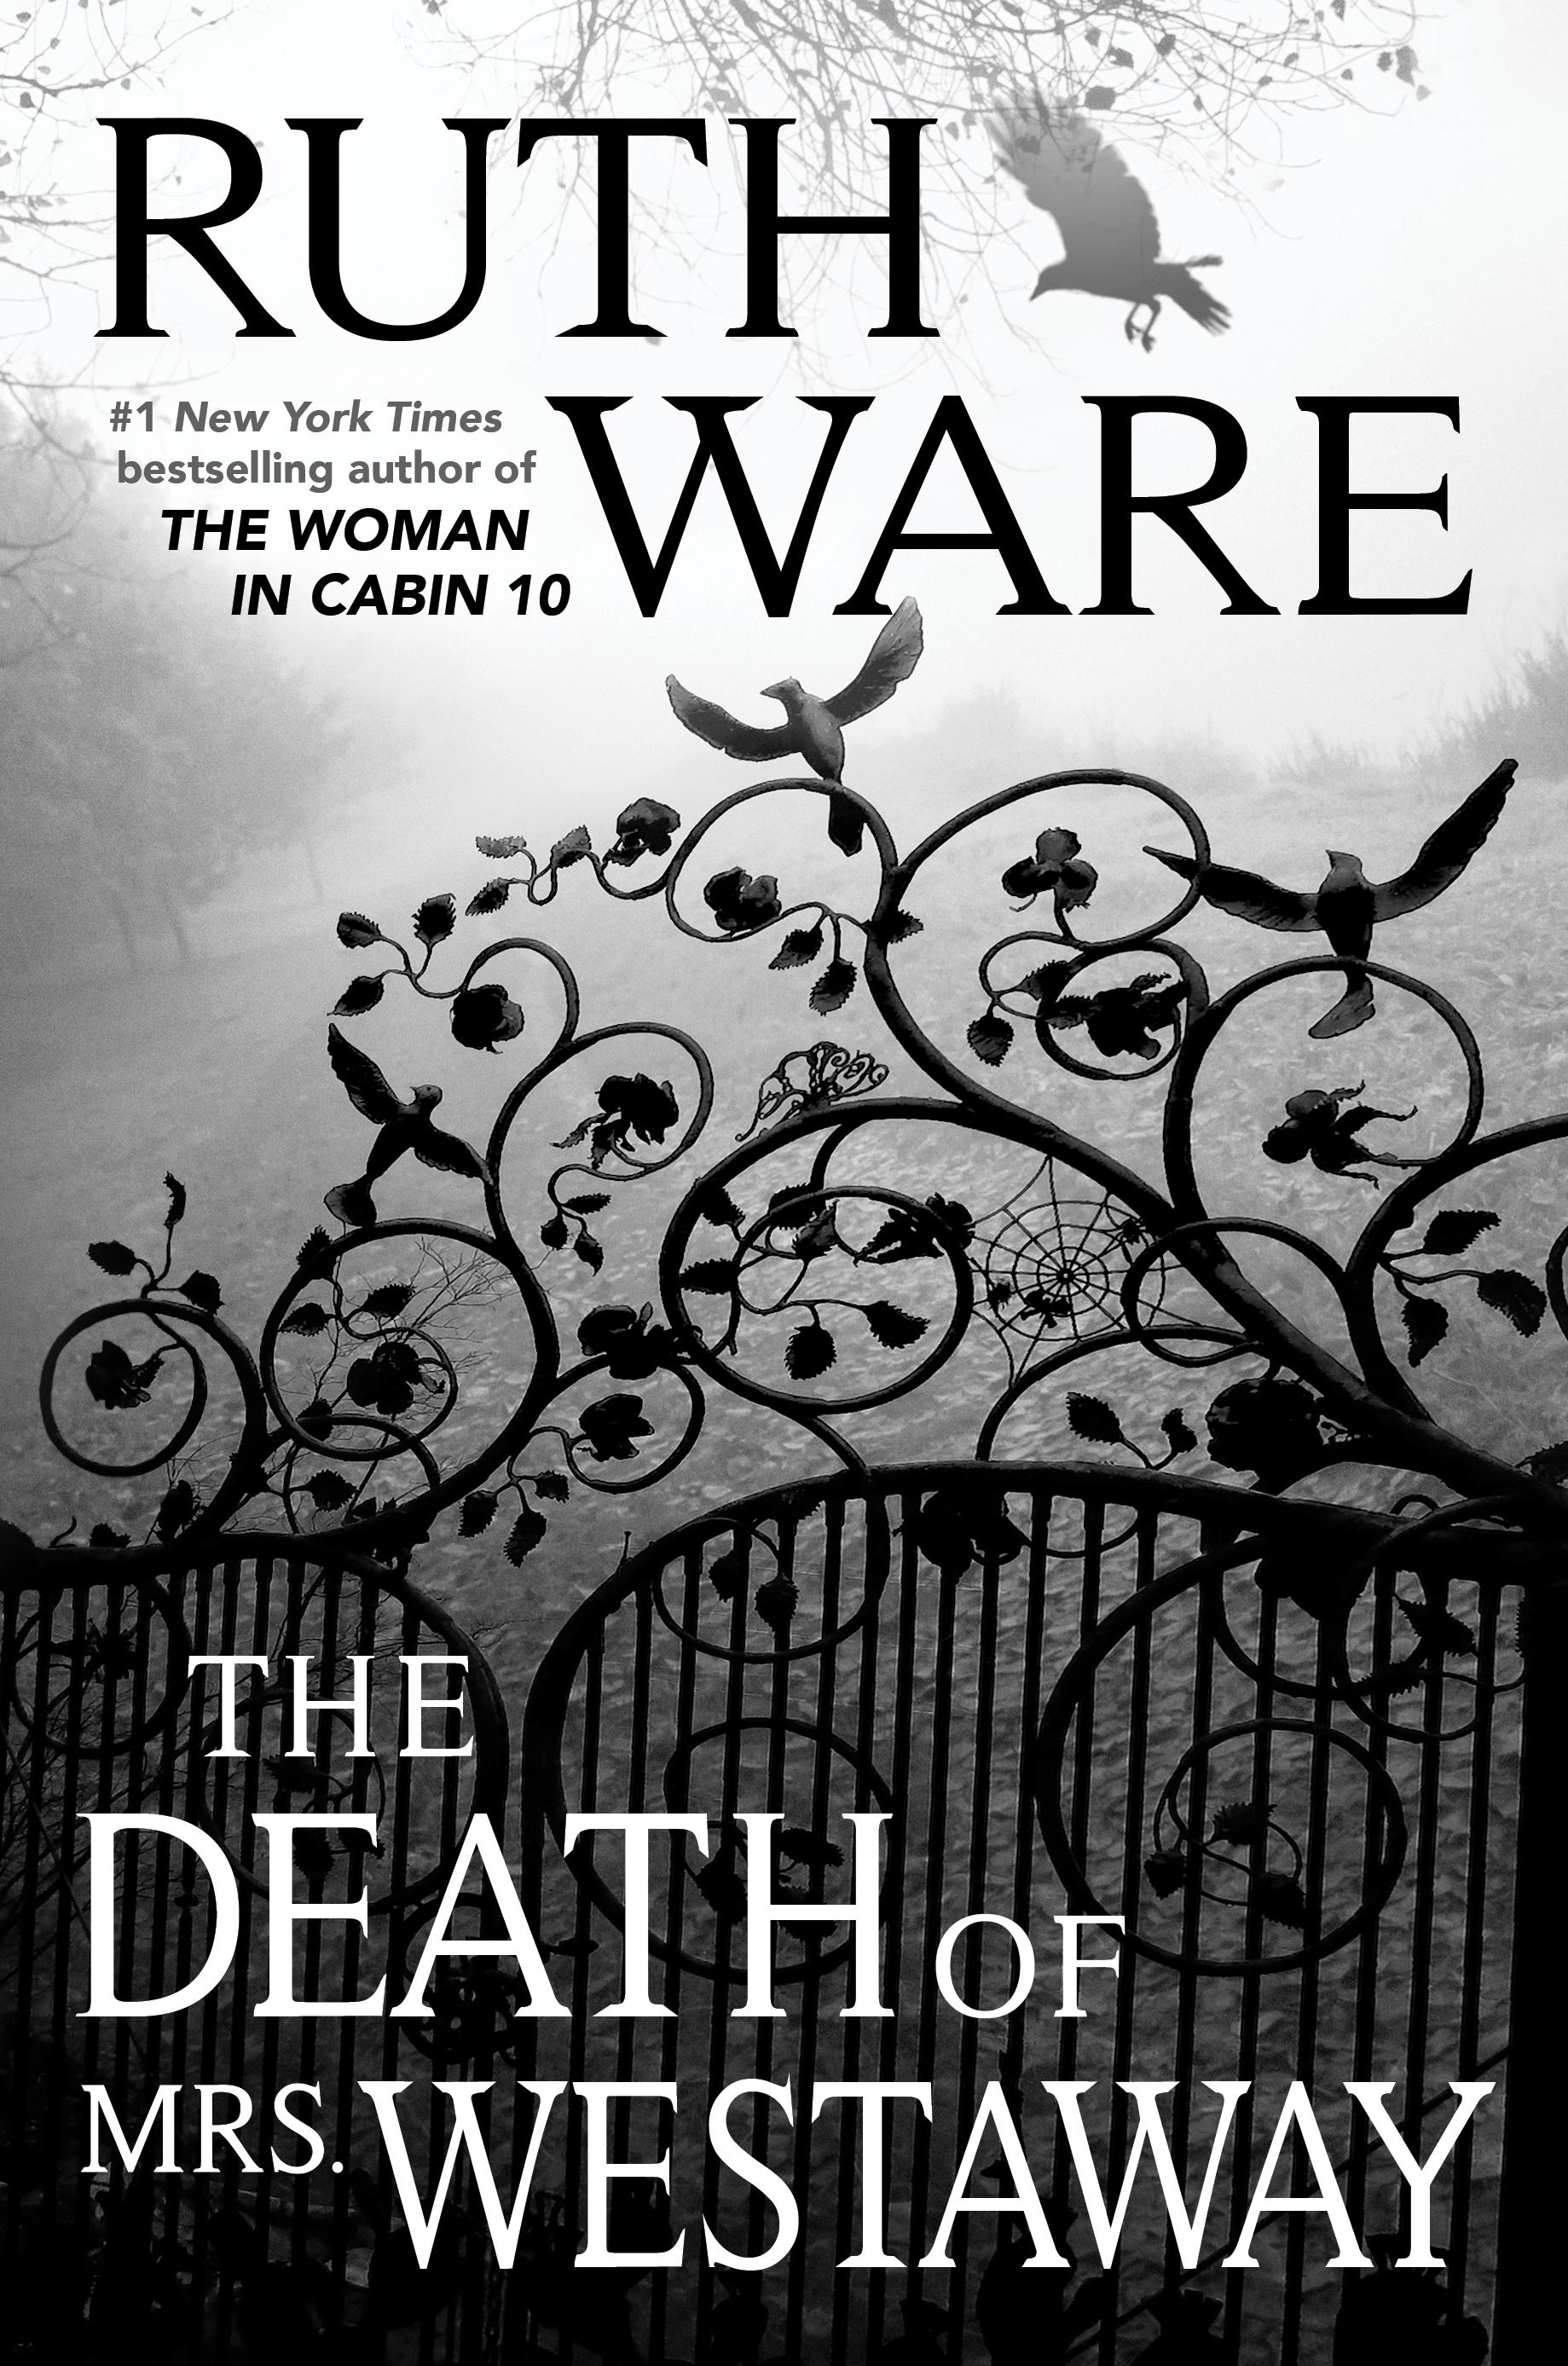 <p>The Death of Mrs. Westaway, by Ruth Ware (Image: Courtesy{&amp;nbsp;}Gallery/Scout Press){&amp;nbsp;}</p>